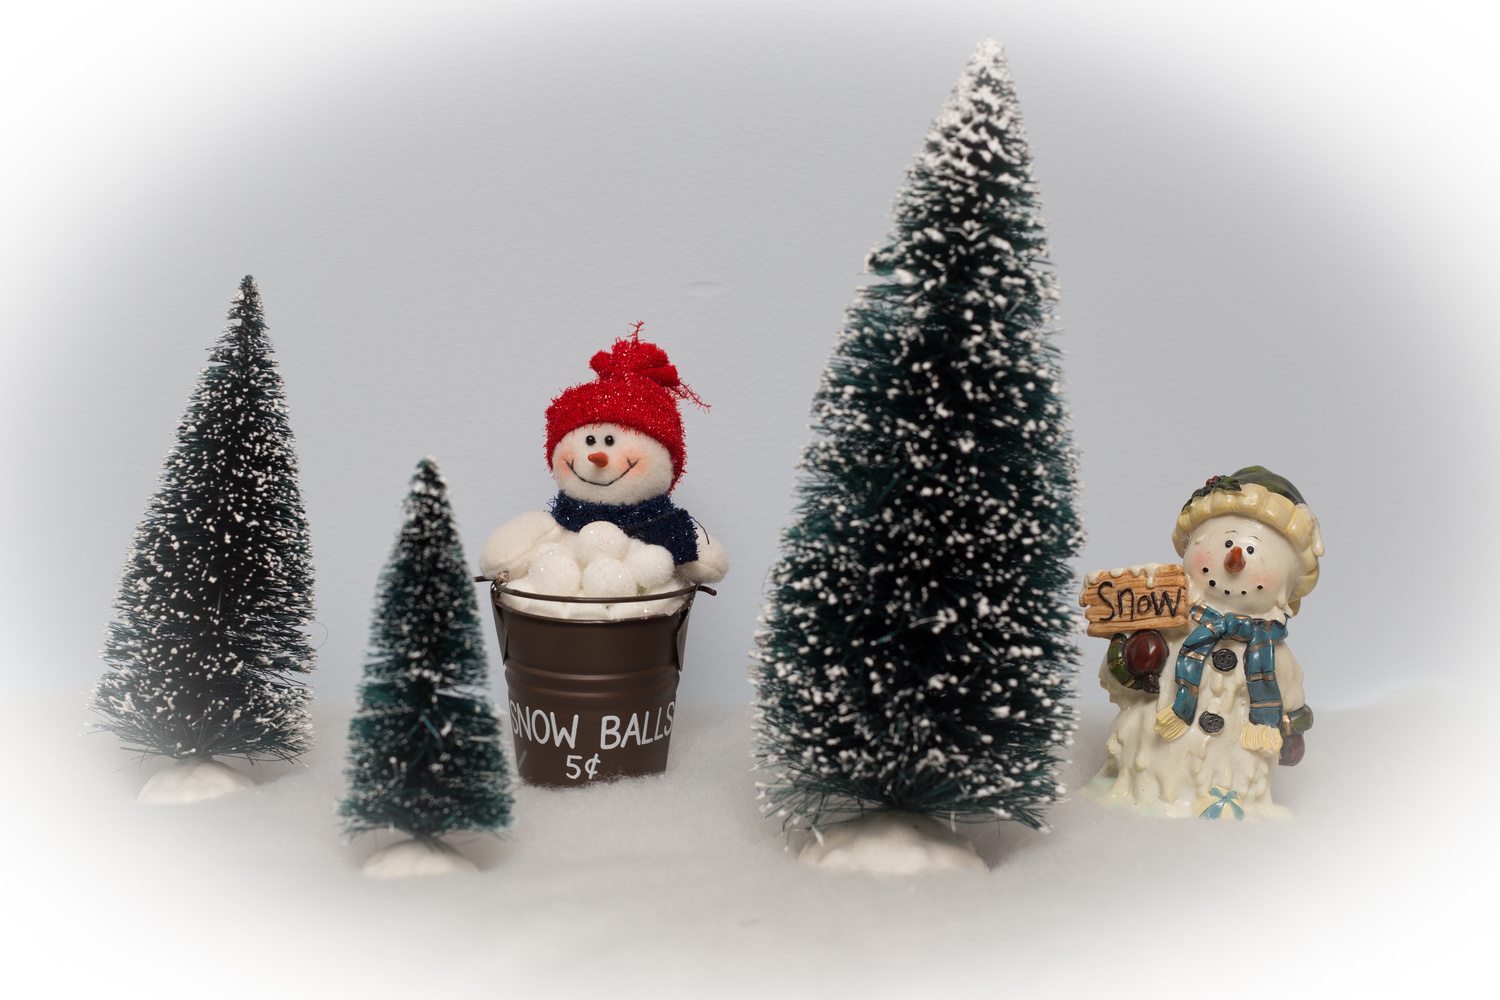 Fun in a Christmas Snow by Robert Lee